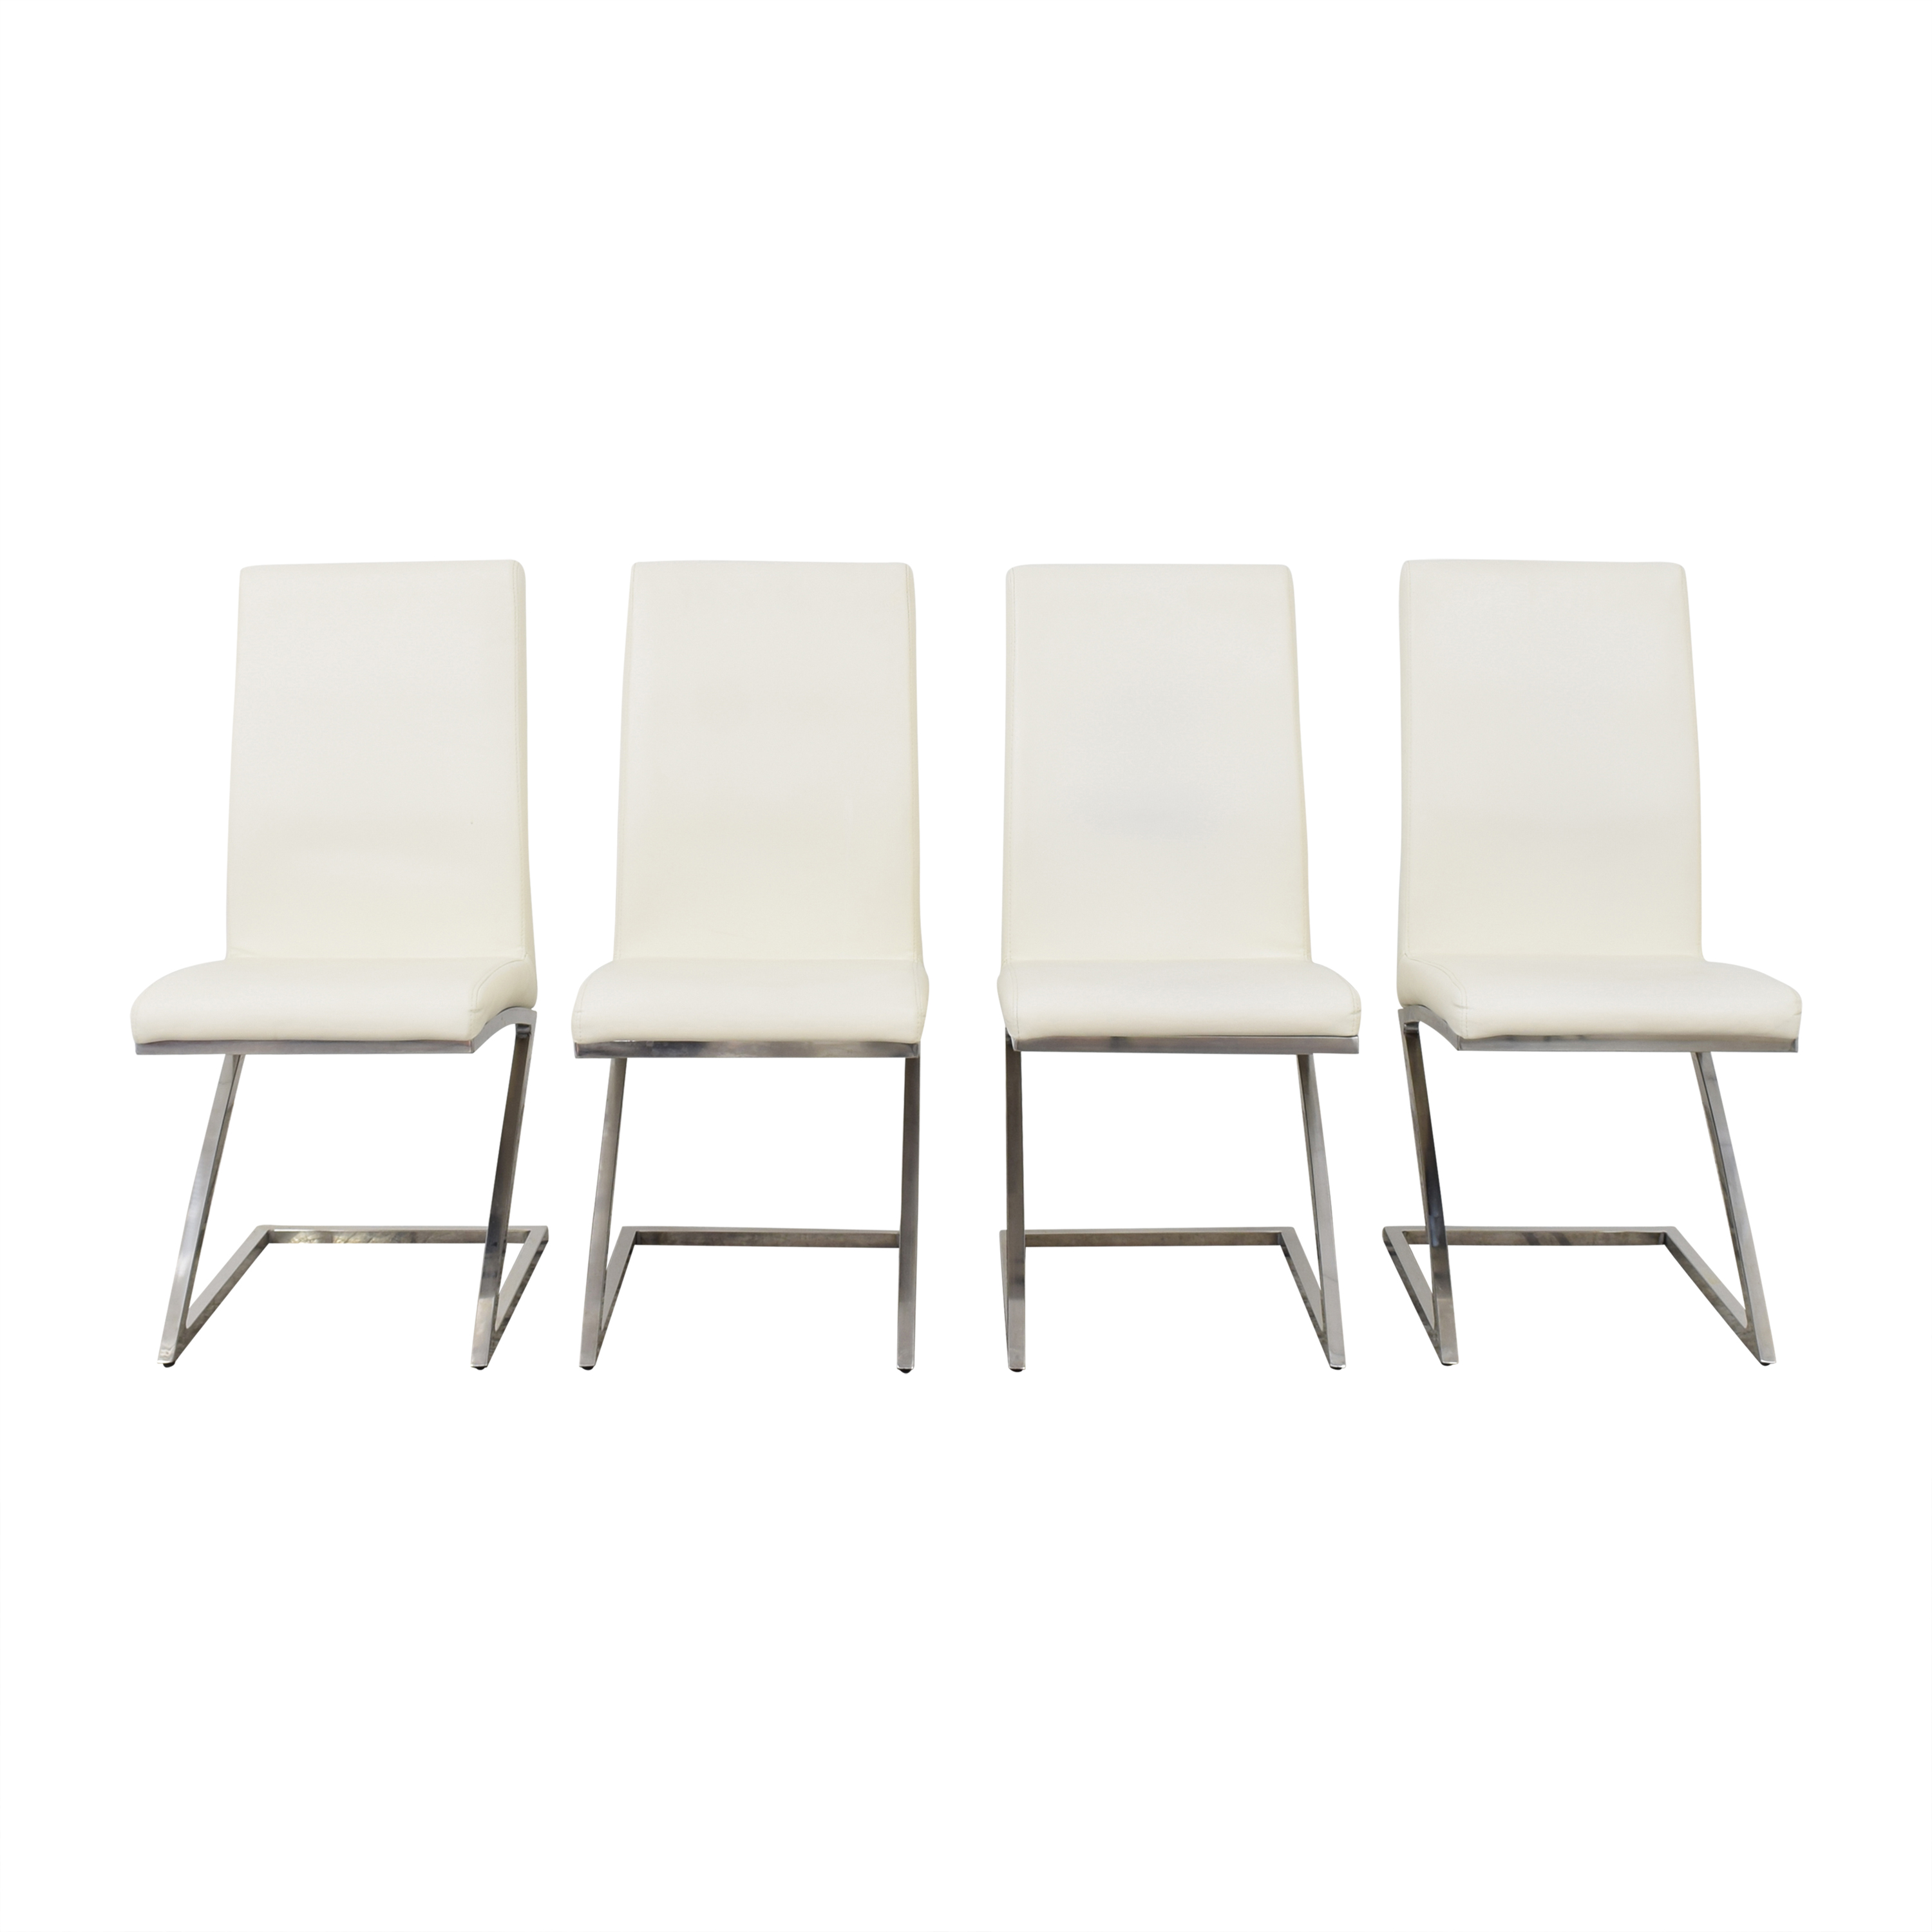 Chintaly Imports Chintaly Imports Jade Cantilever Dining Chairs discount